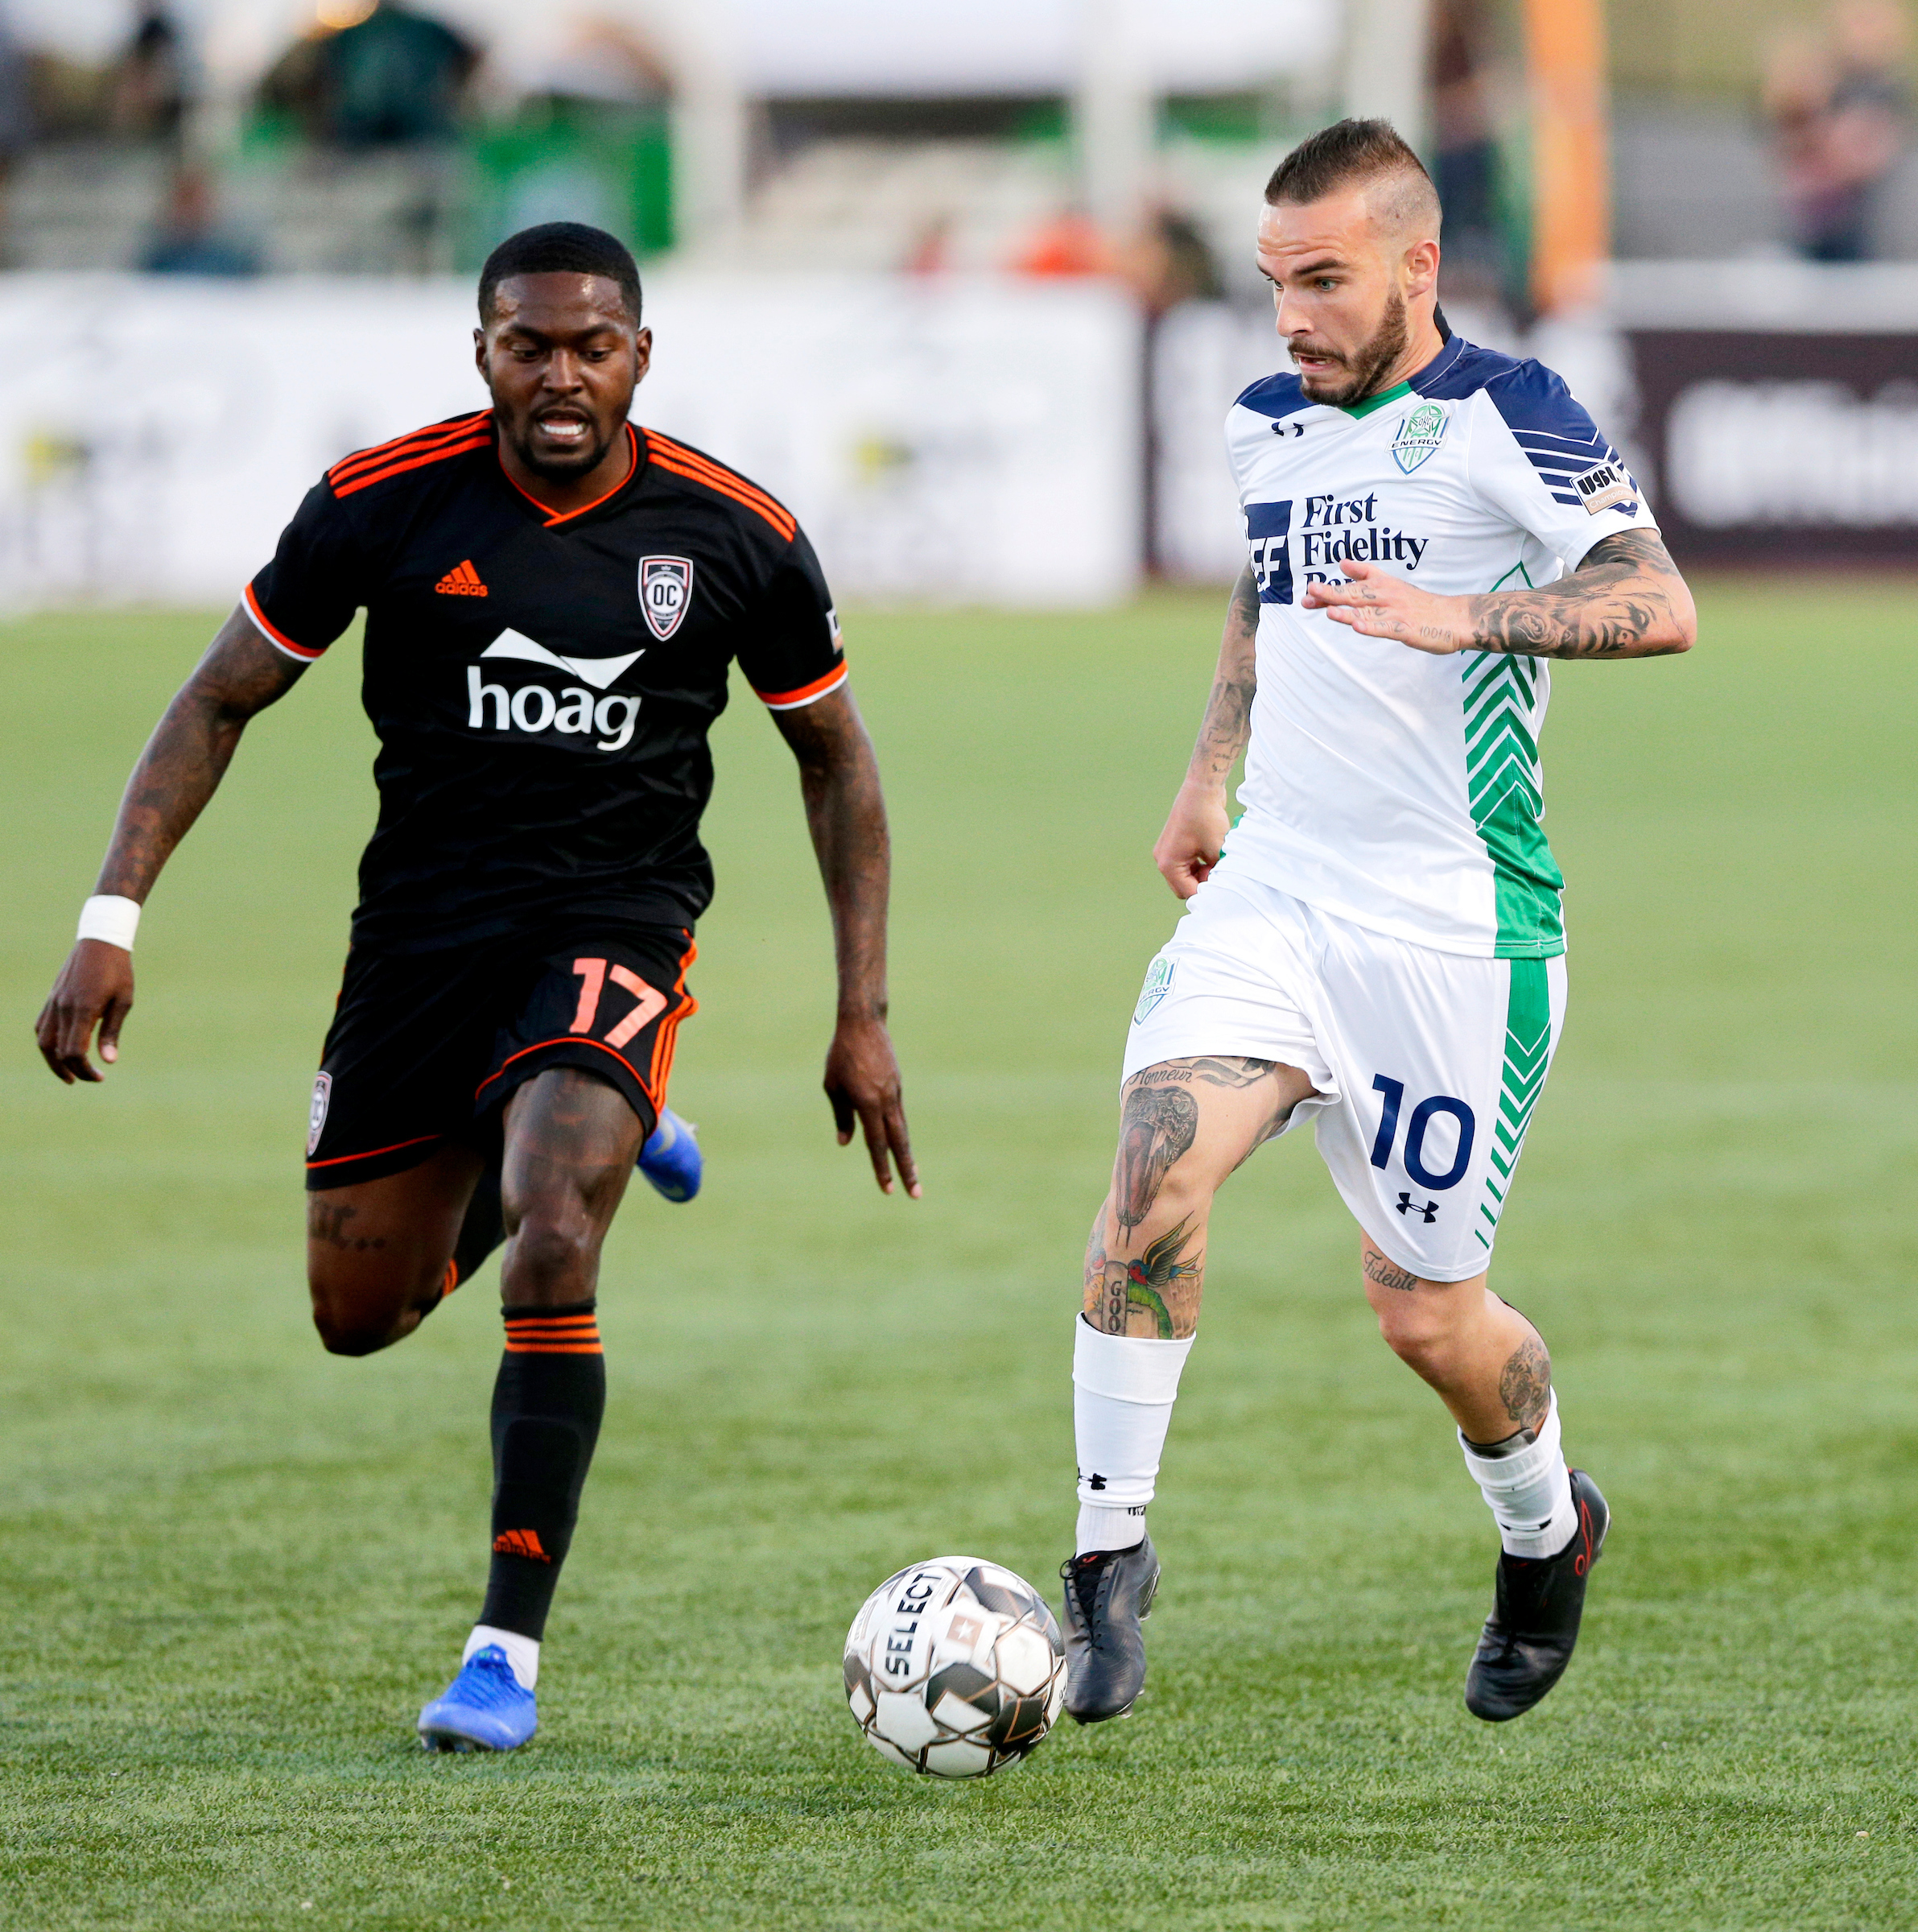 Orange County SC winger Darwin Jones attempts to get the ball from OKC Energy FC's Alexy Bosetti in their 1-0 loss.  |  Photo courtesy of OKC Energy FC